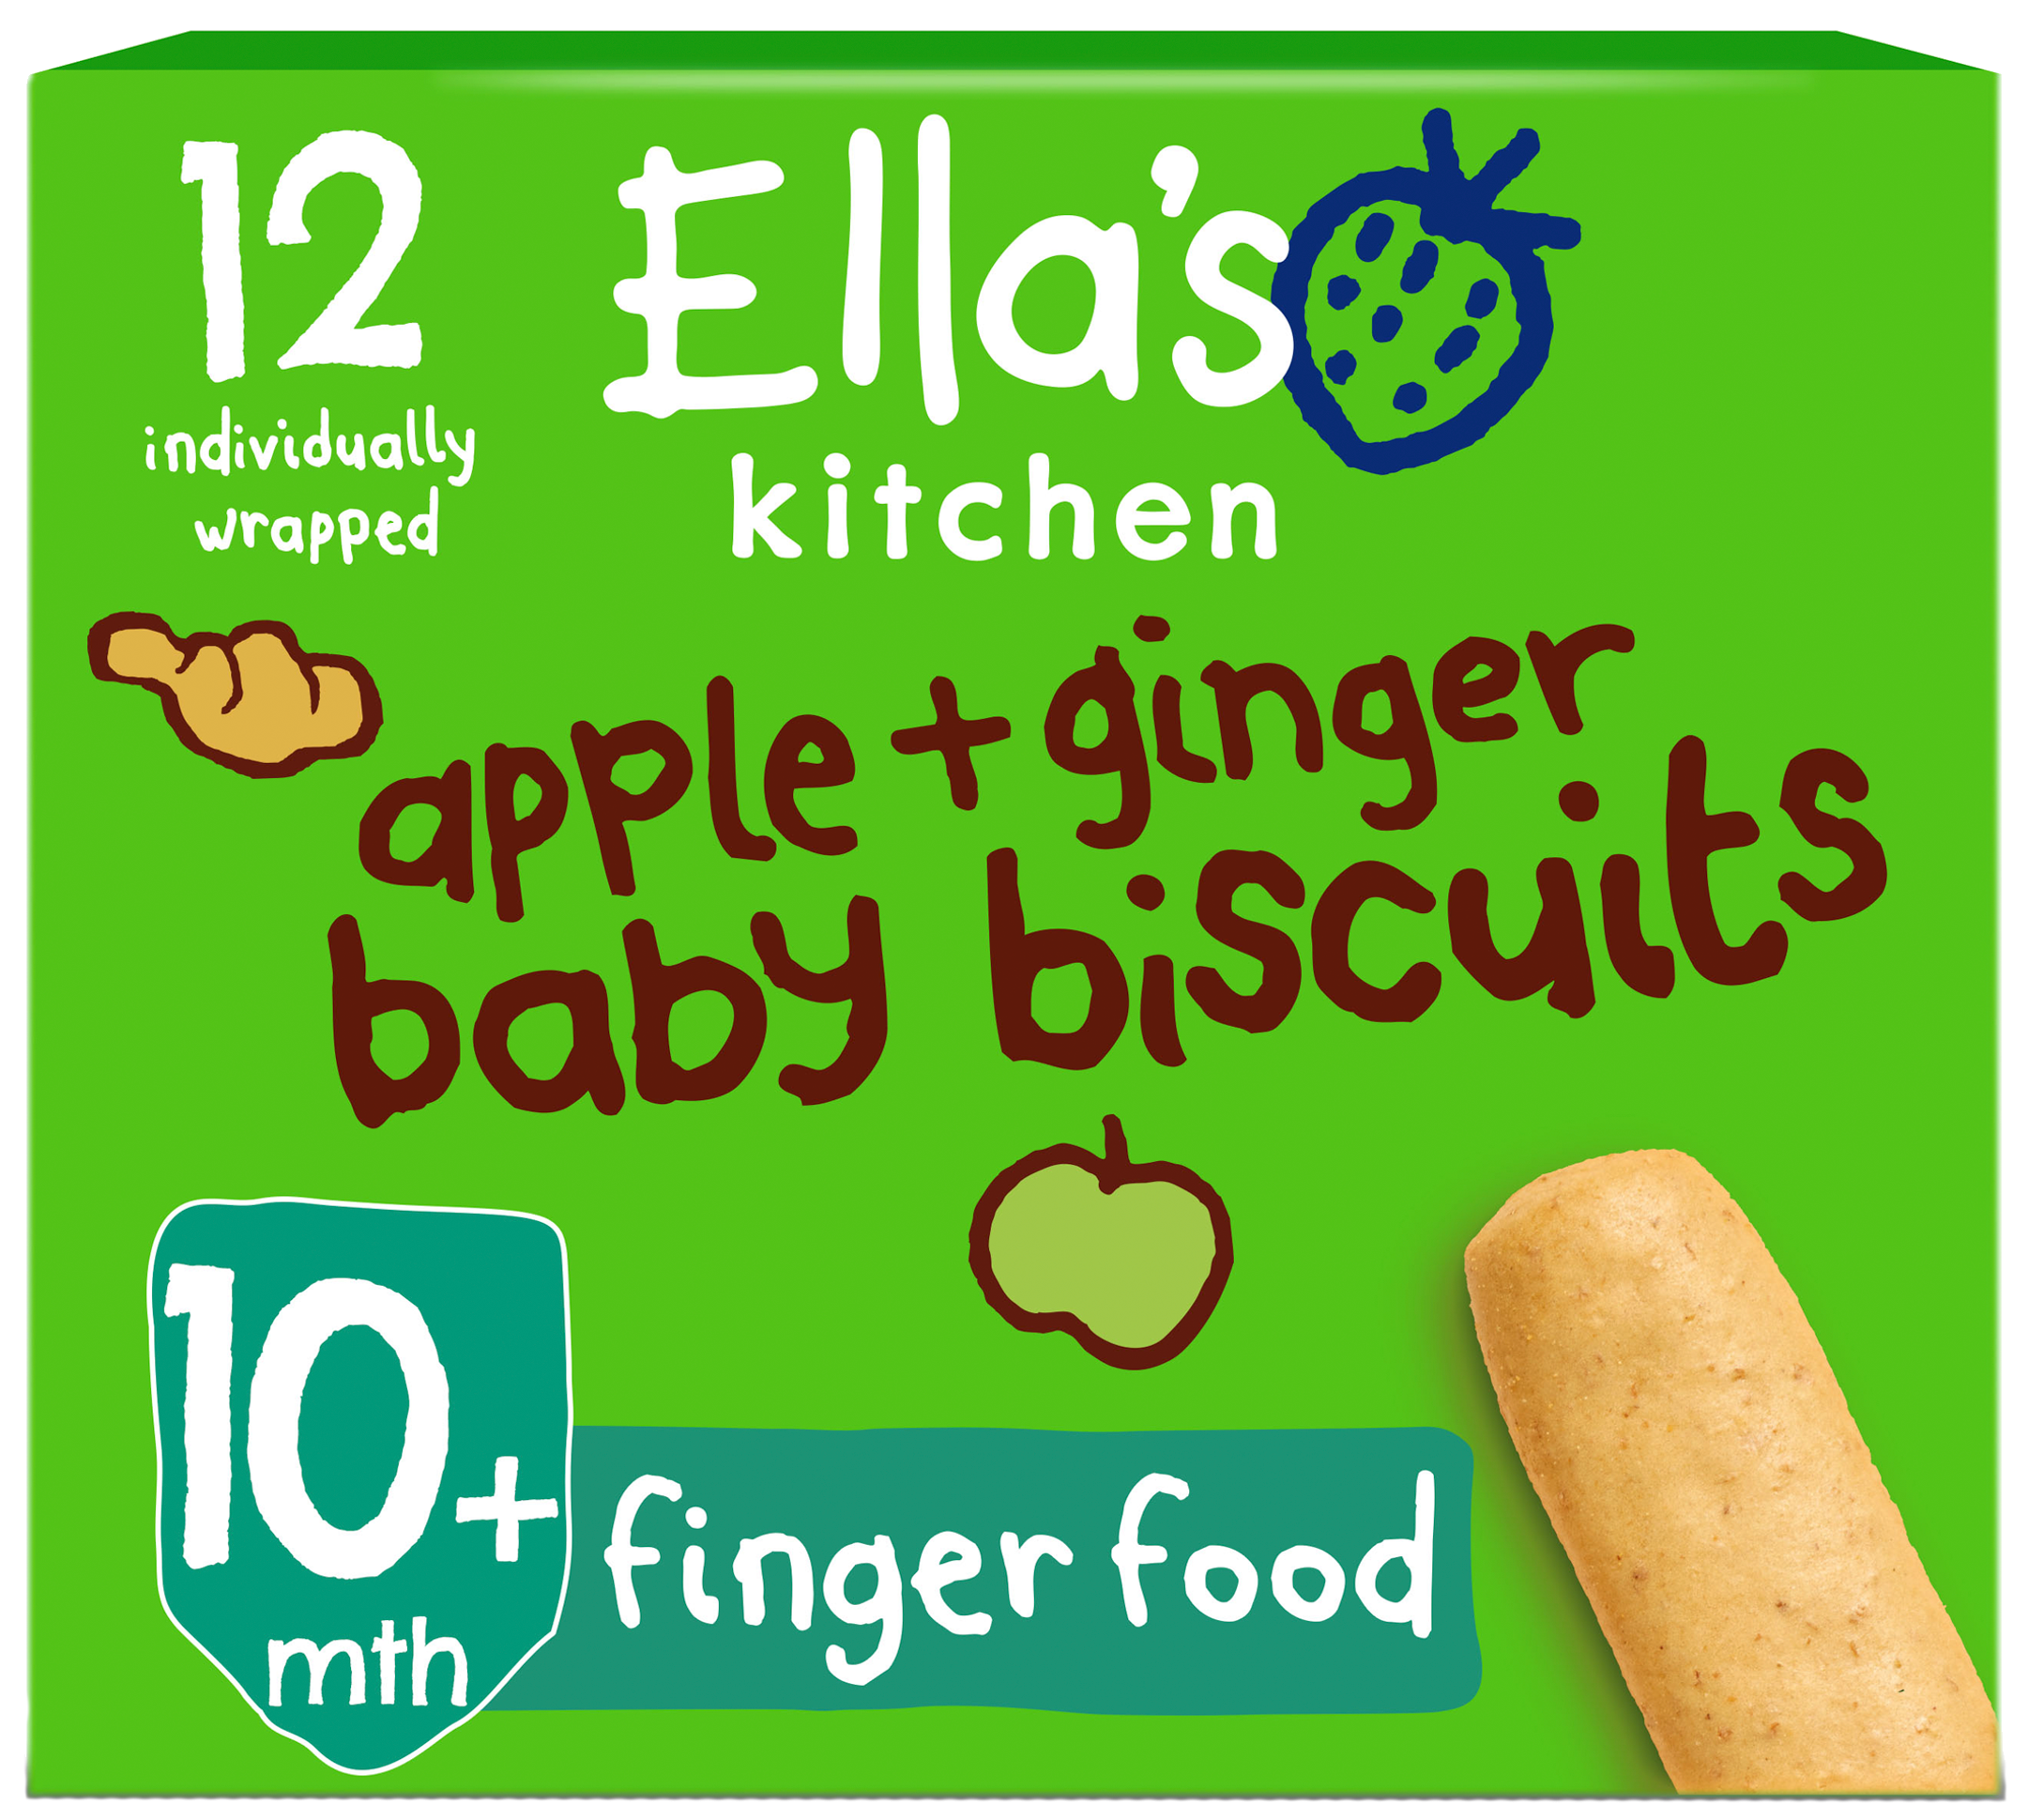 Ellas kitchen apple ginger biscuits box front of pack O